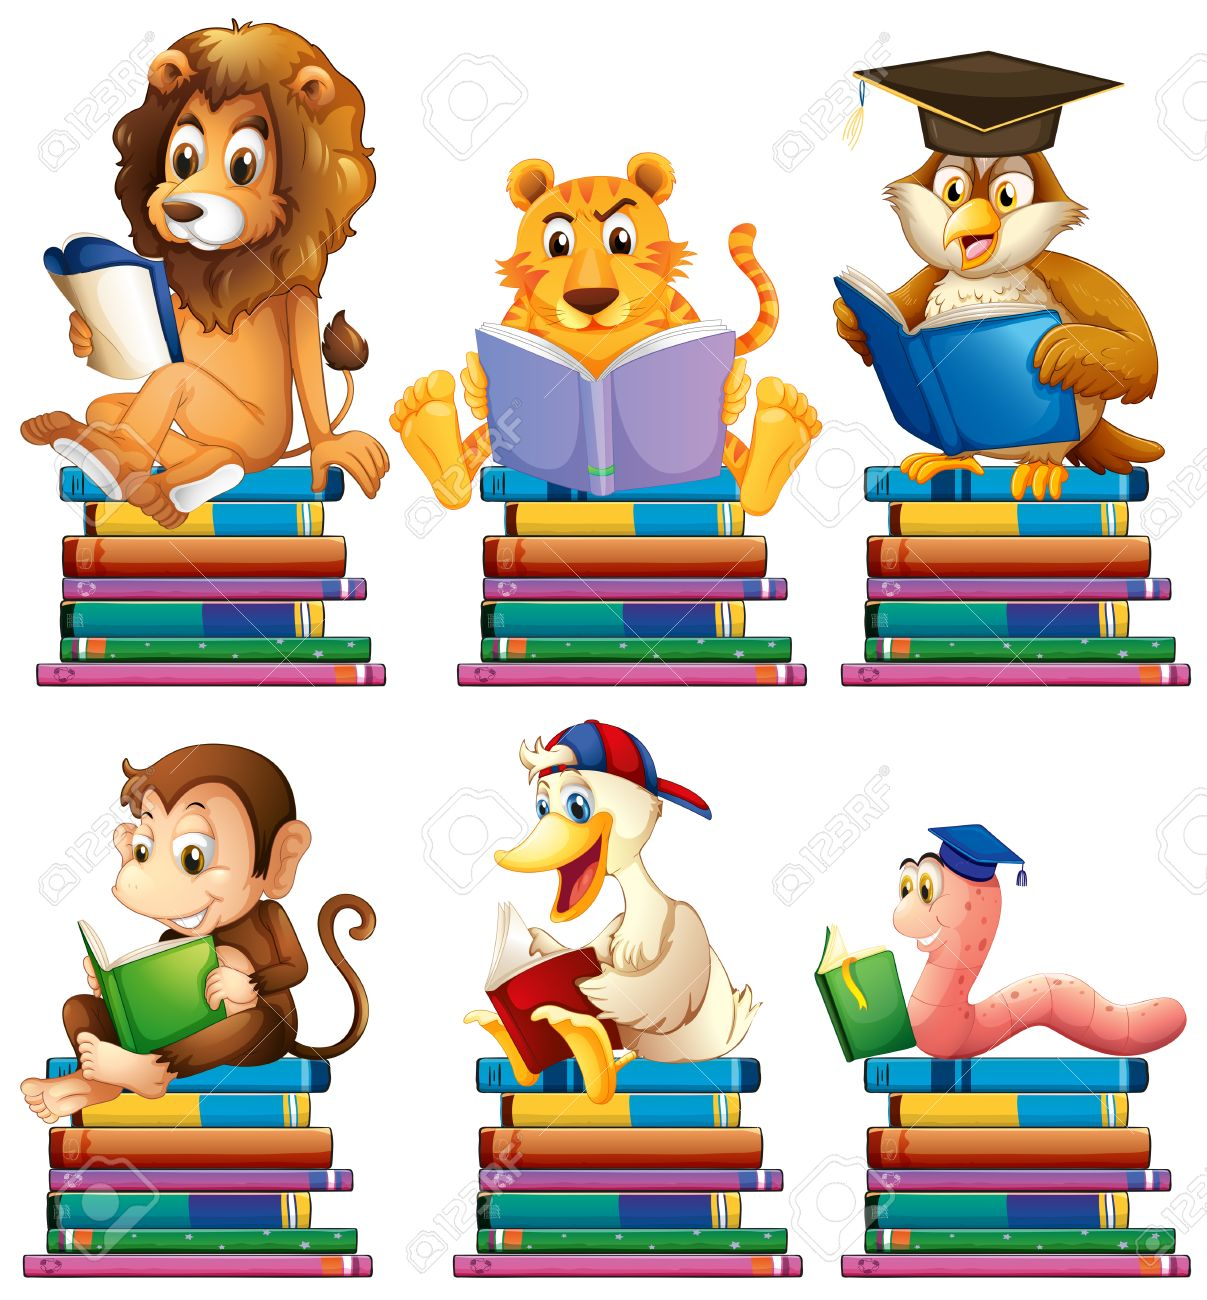 illustration of animals reading books royalty free cliparts vectors